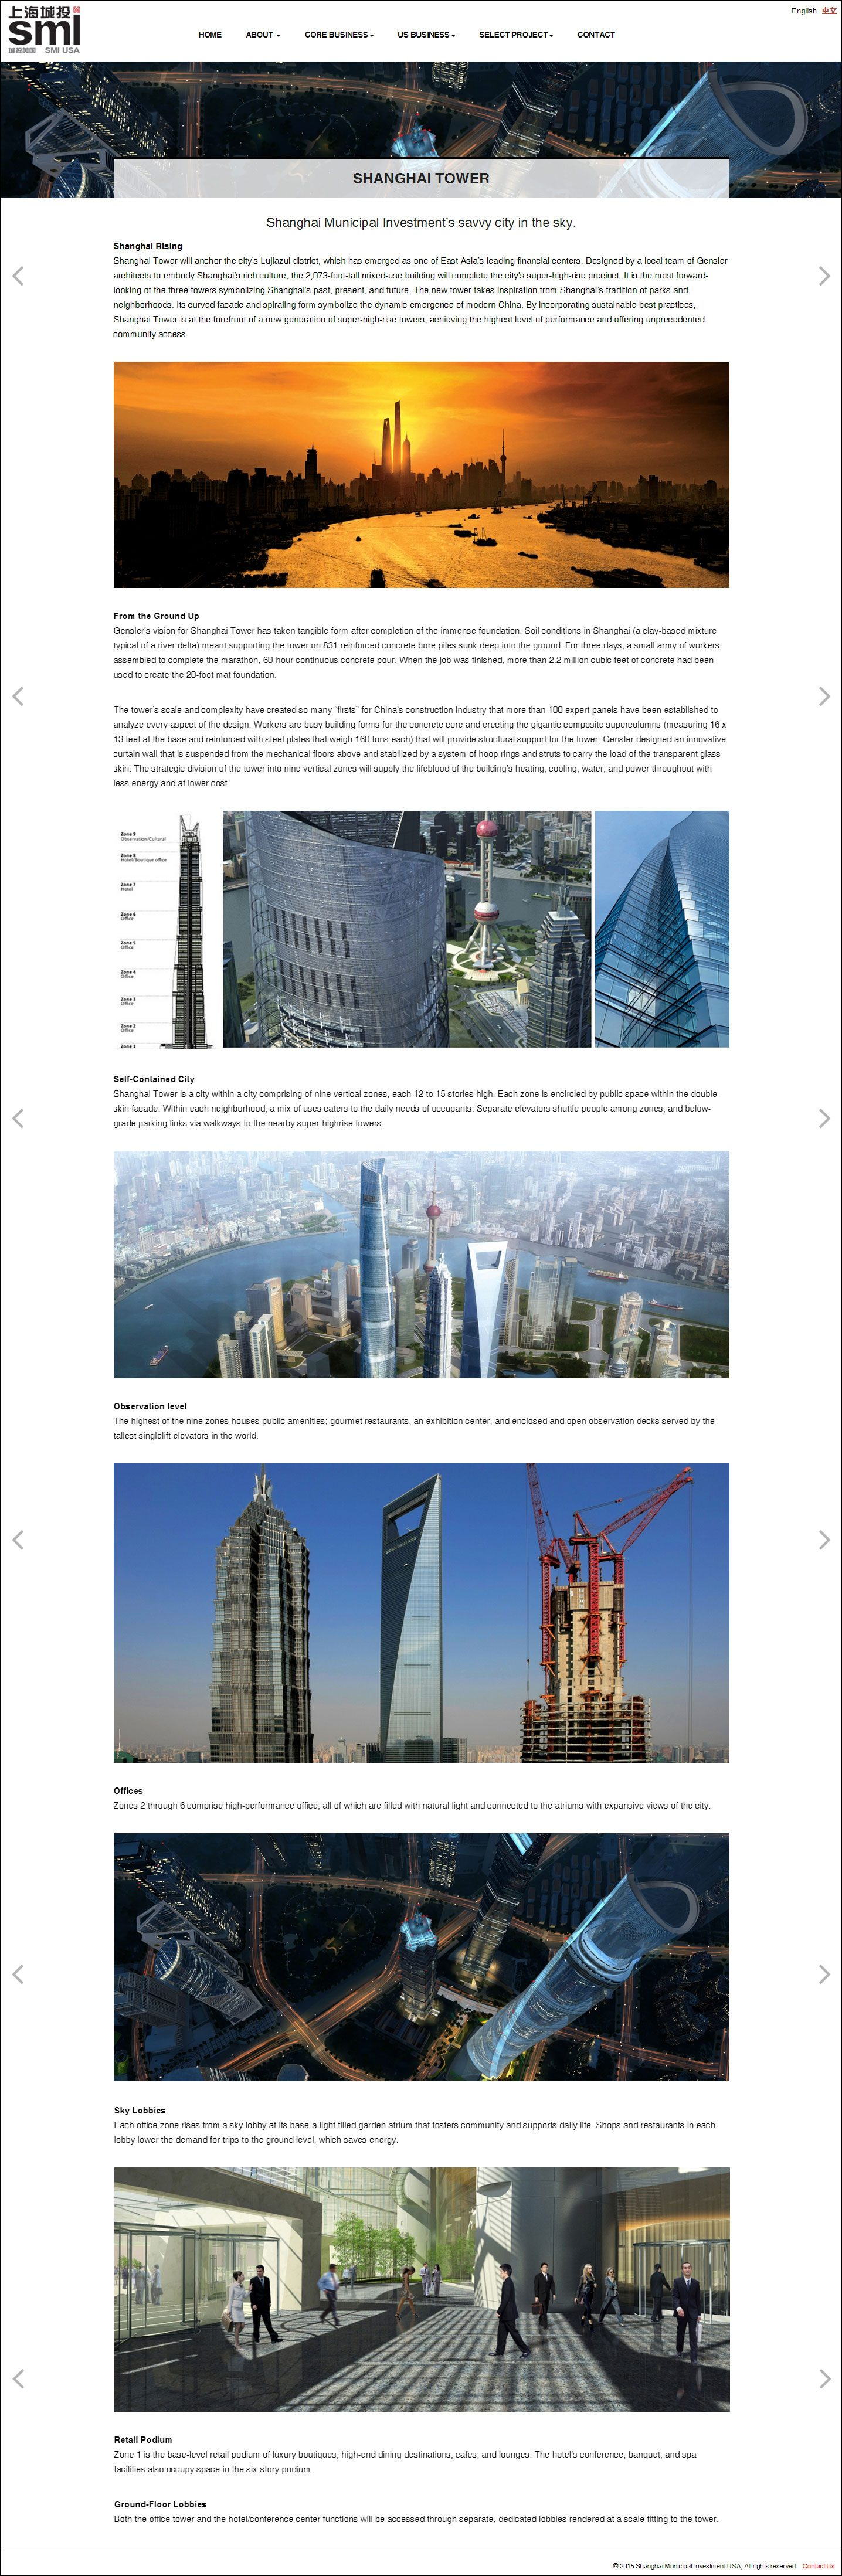 SMI-TOWER-PAGE